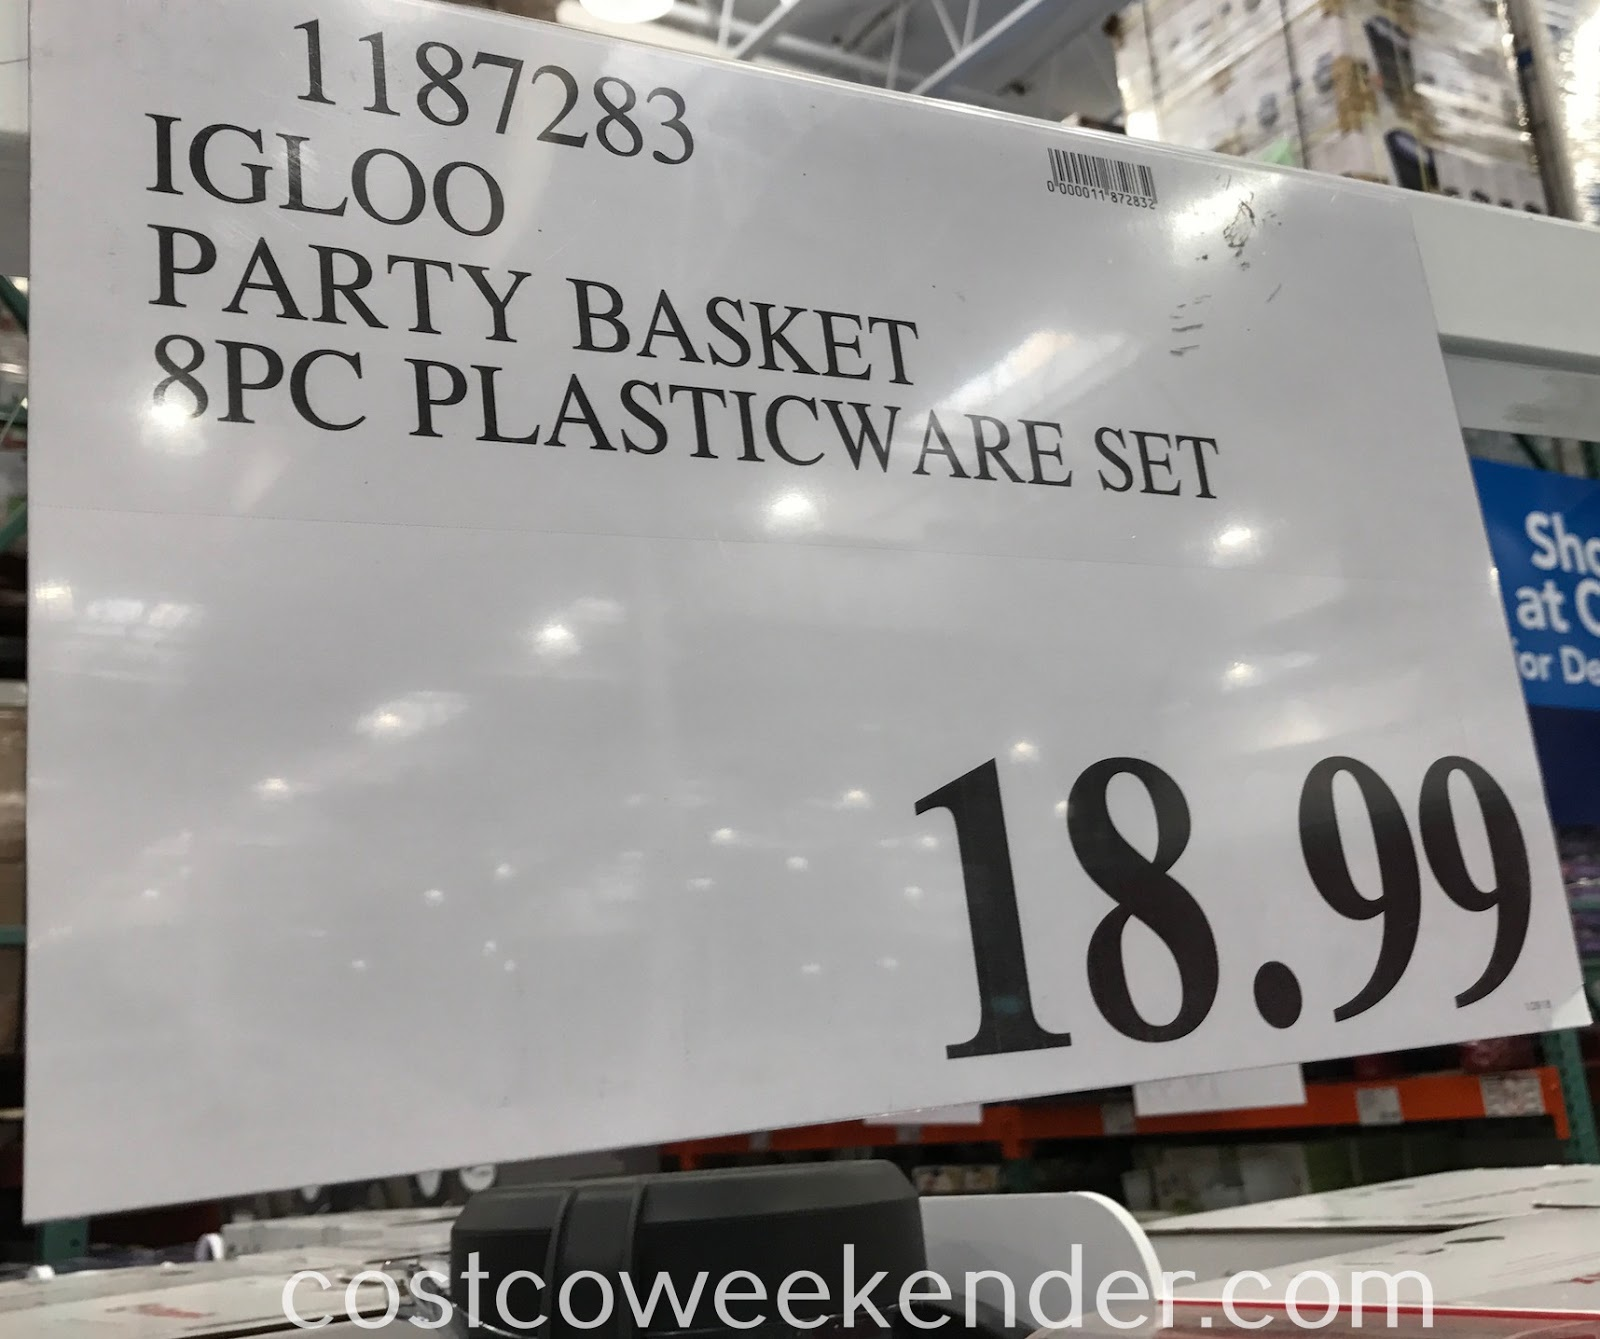 Deal for the Igloo Party Basket with 8-piece Food Storage Set at Costco